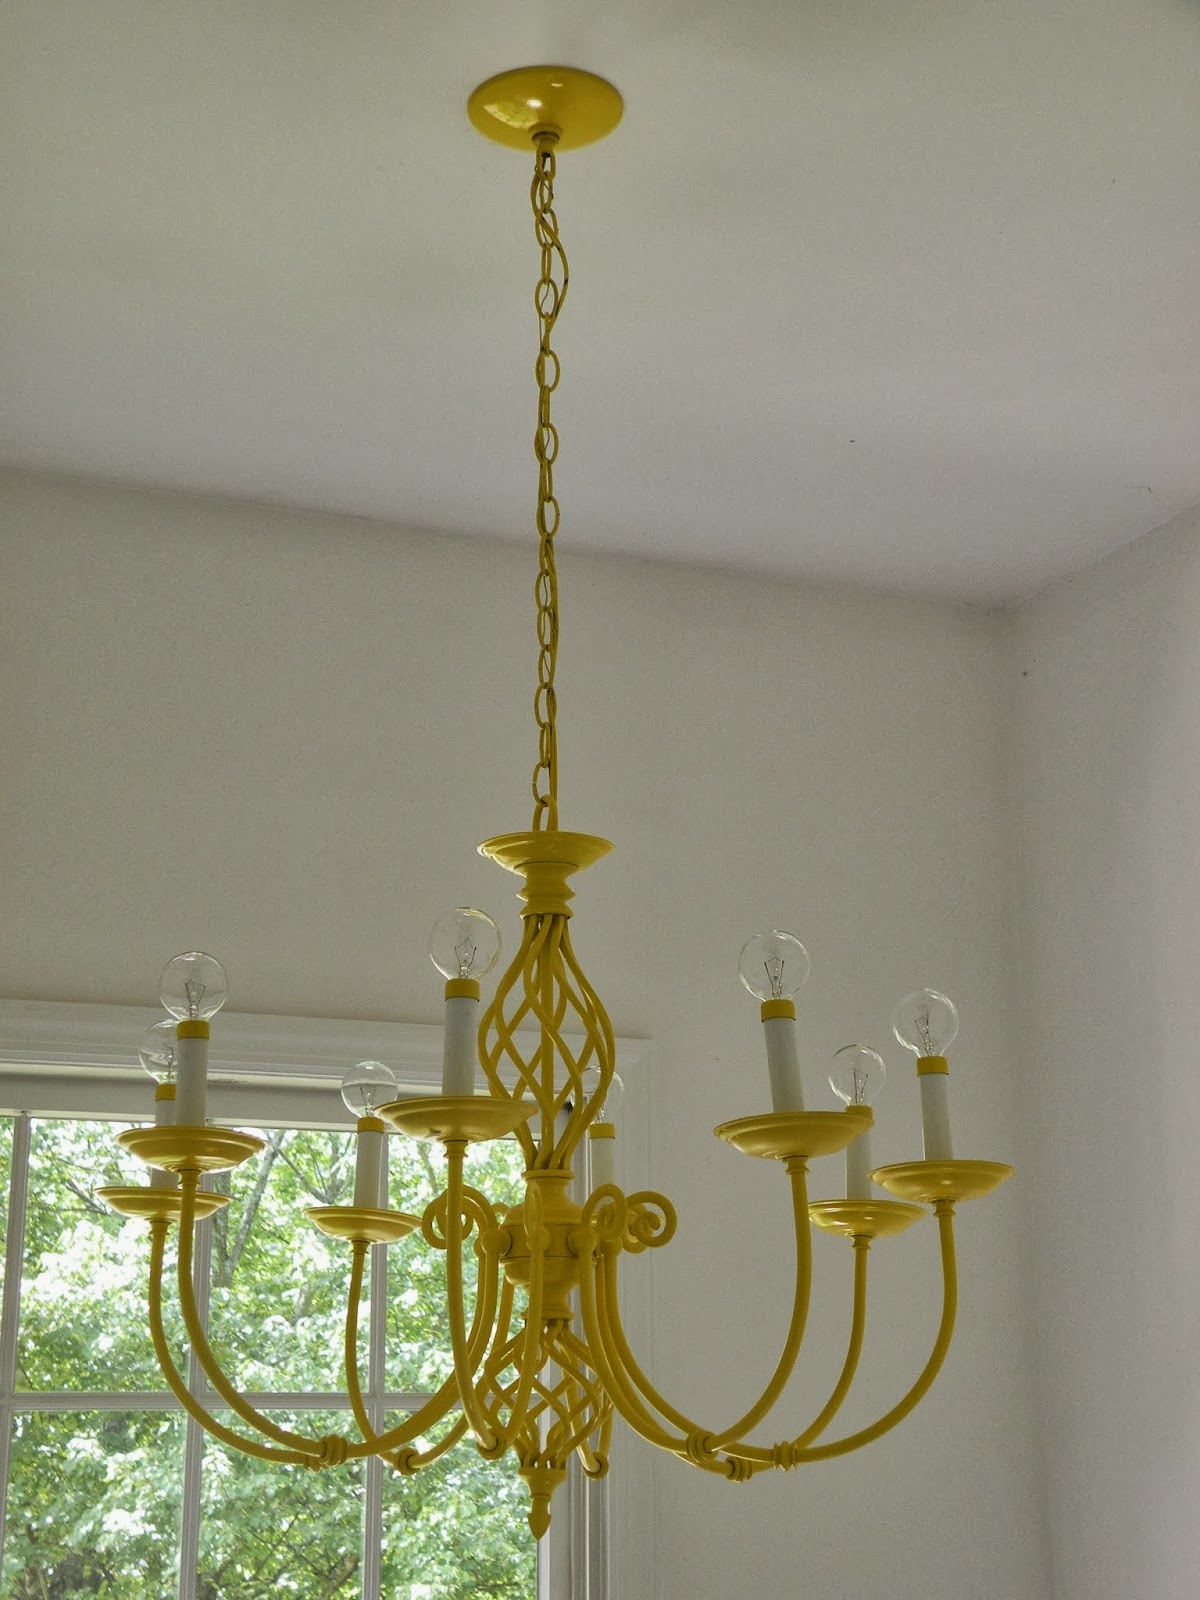 Chandelier Astonishing Funky Chandeliers Affordable Funky Pertaining To Funky Chandeliers (View 15 of 15)